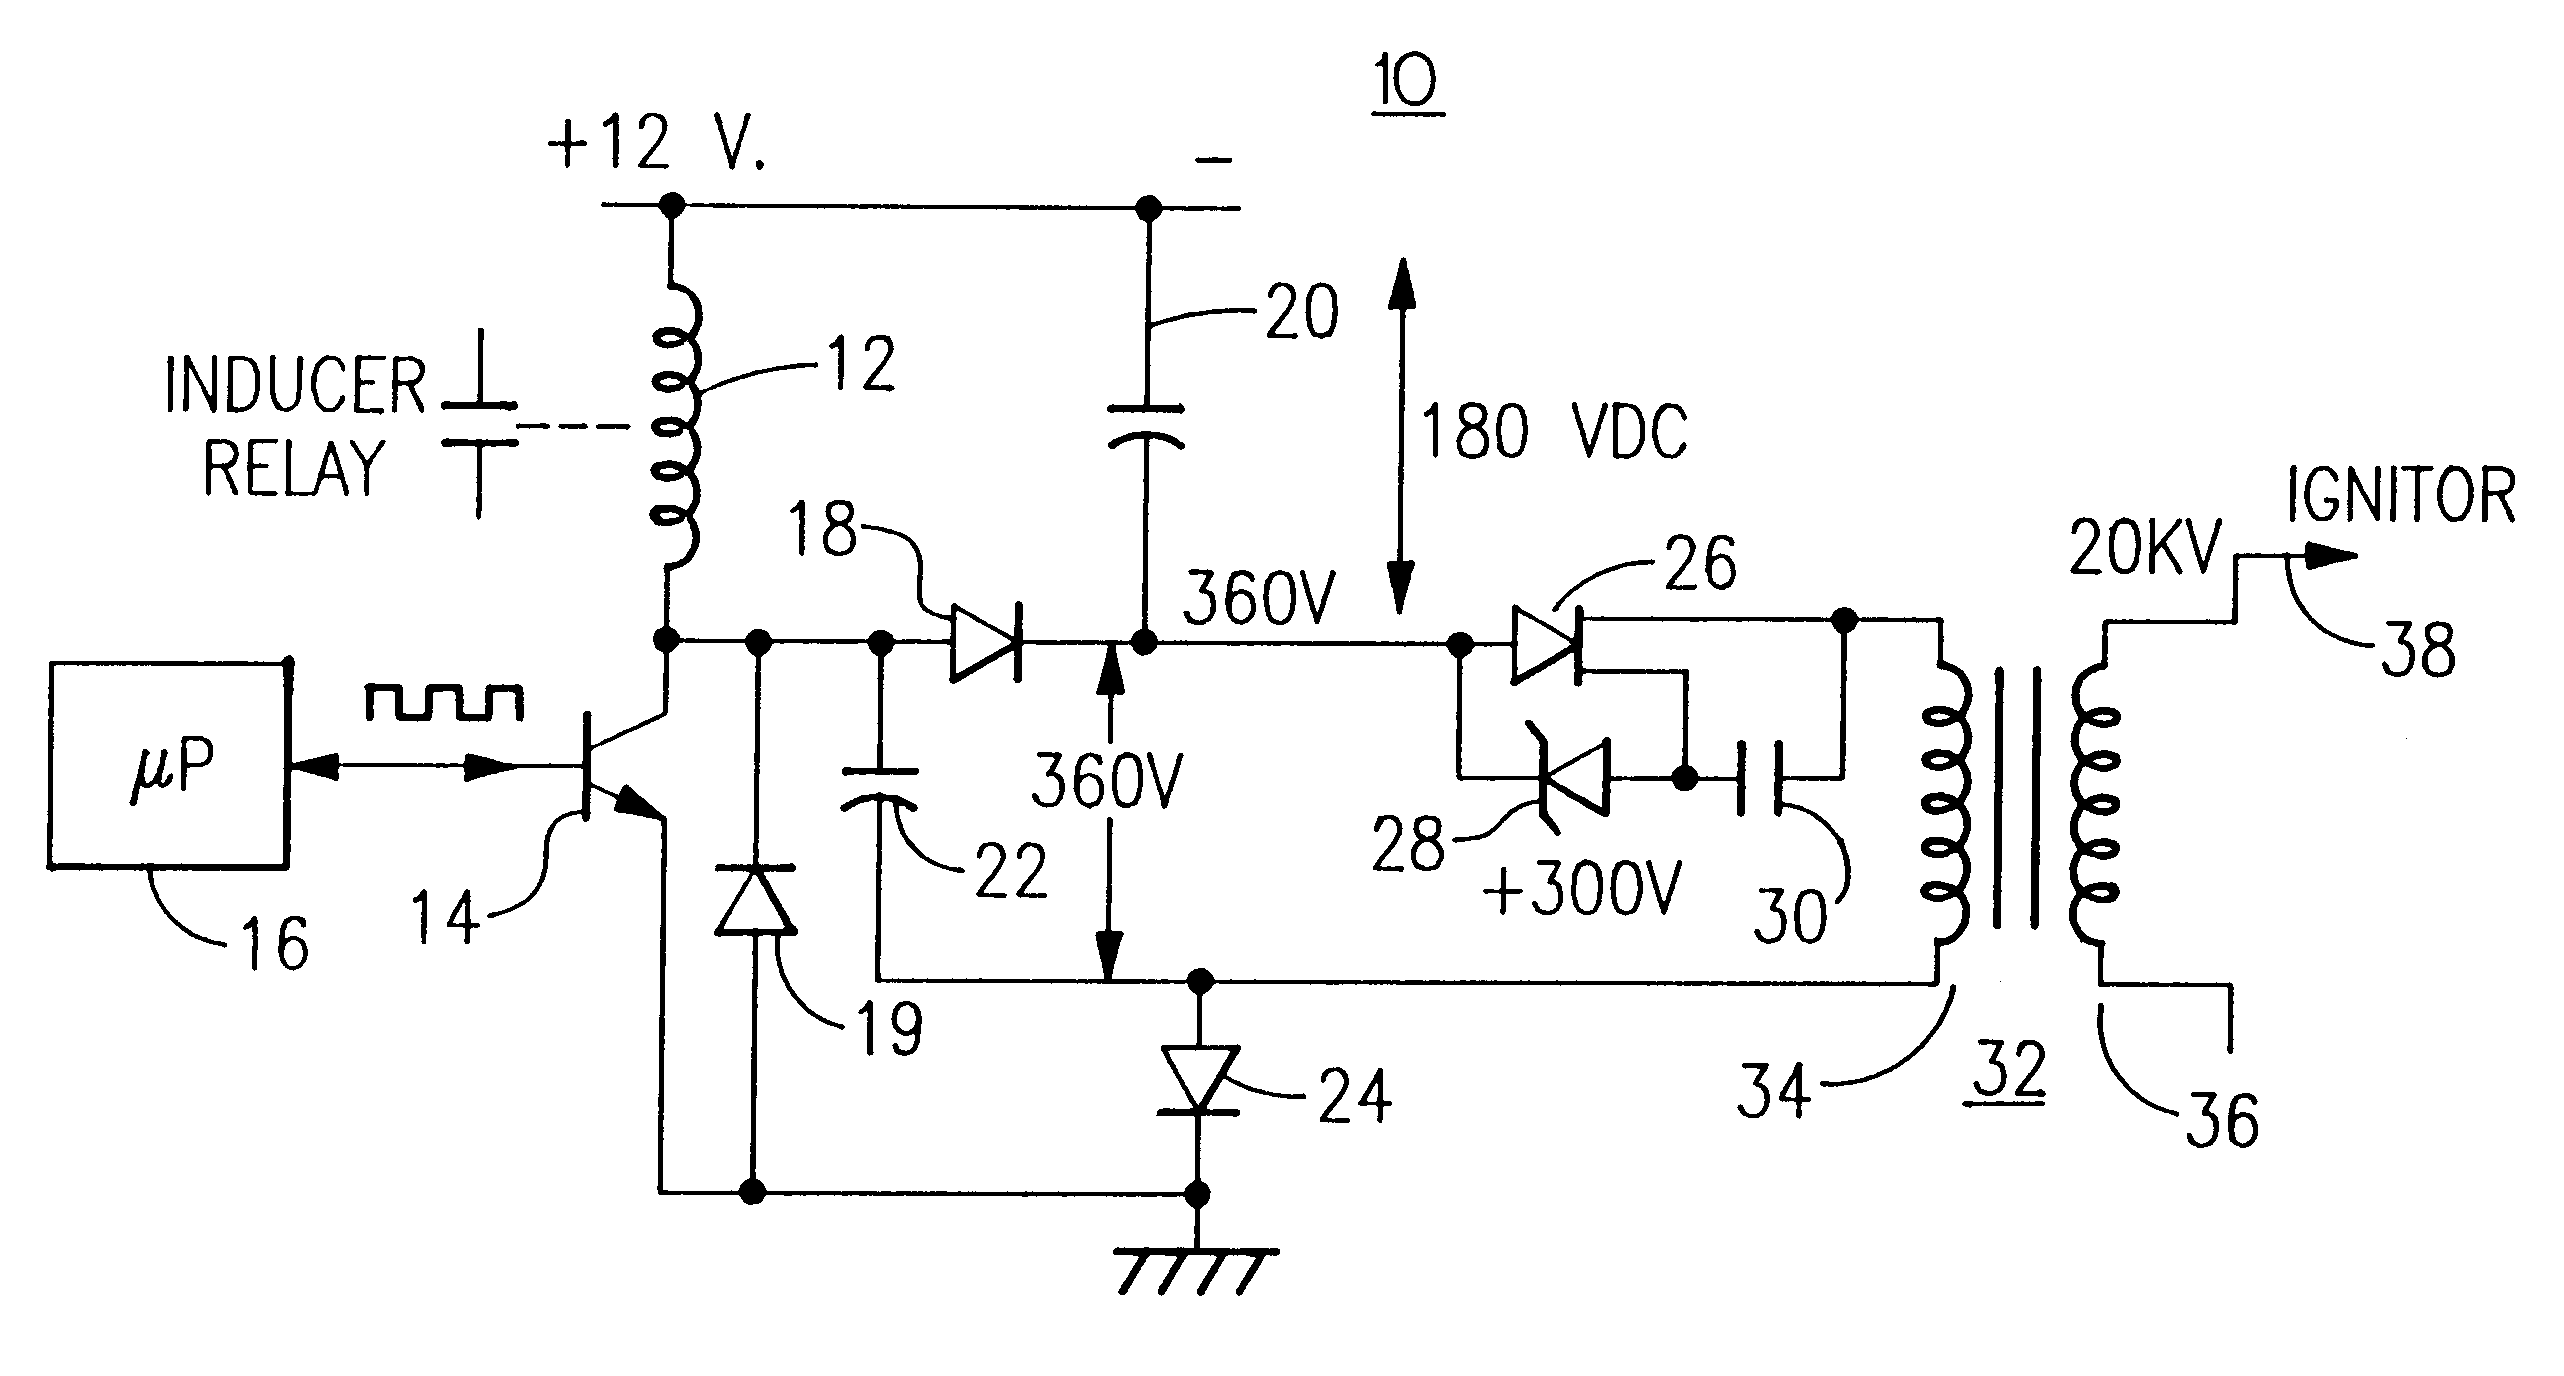 US06222719 20010424 D00000 patent us6222719 ignition boost and rectification flame RV 12V Wiring Diagram at aneh.co